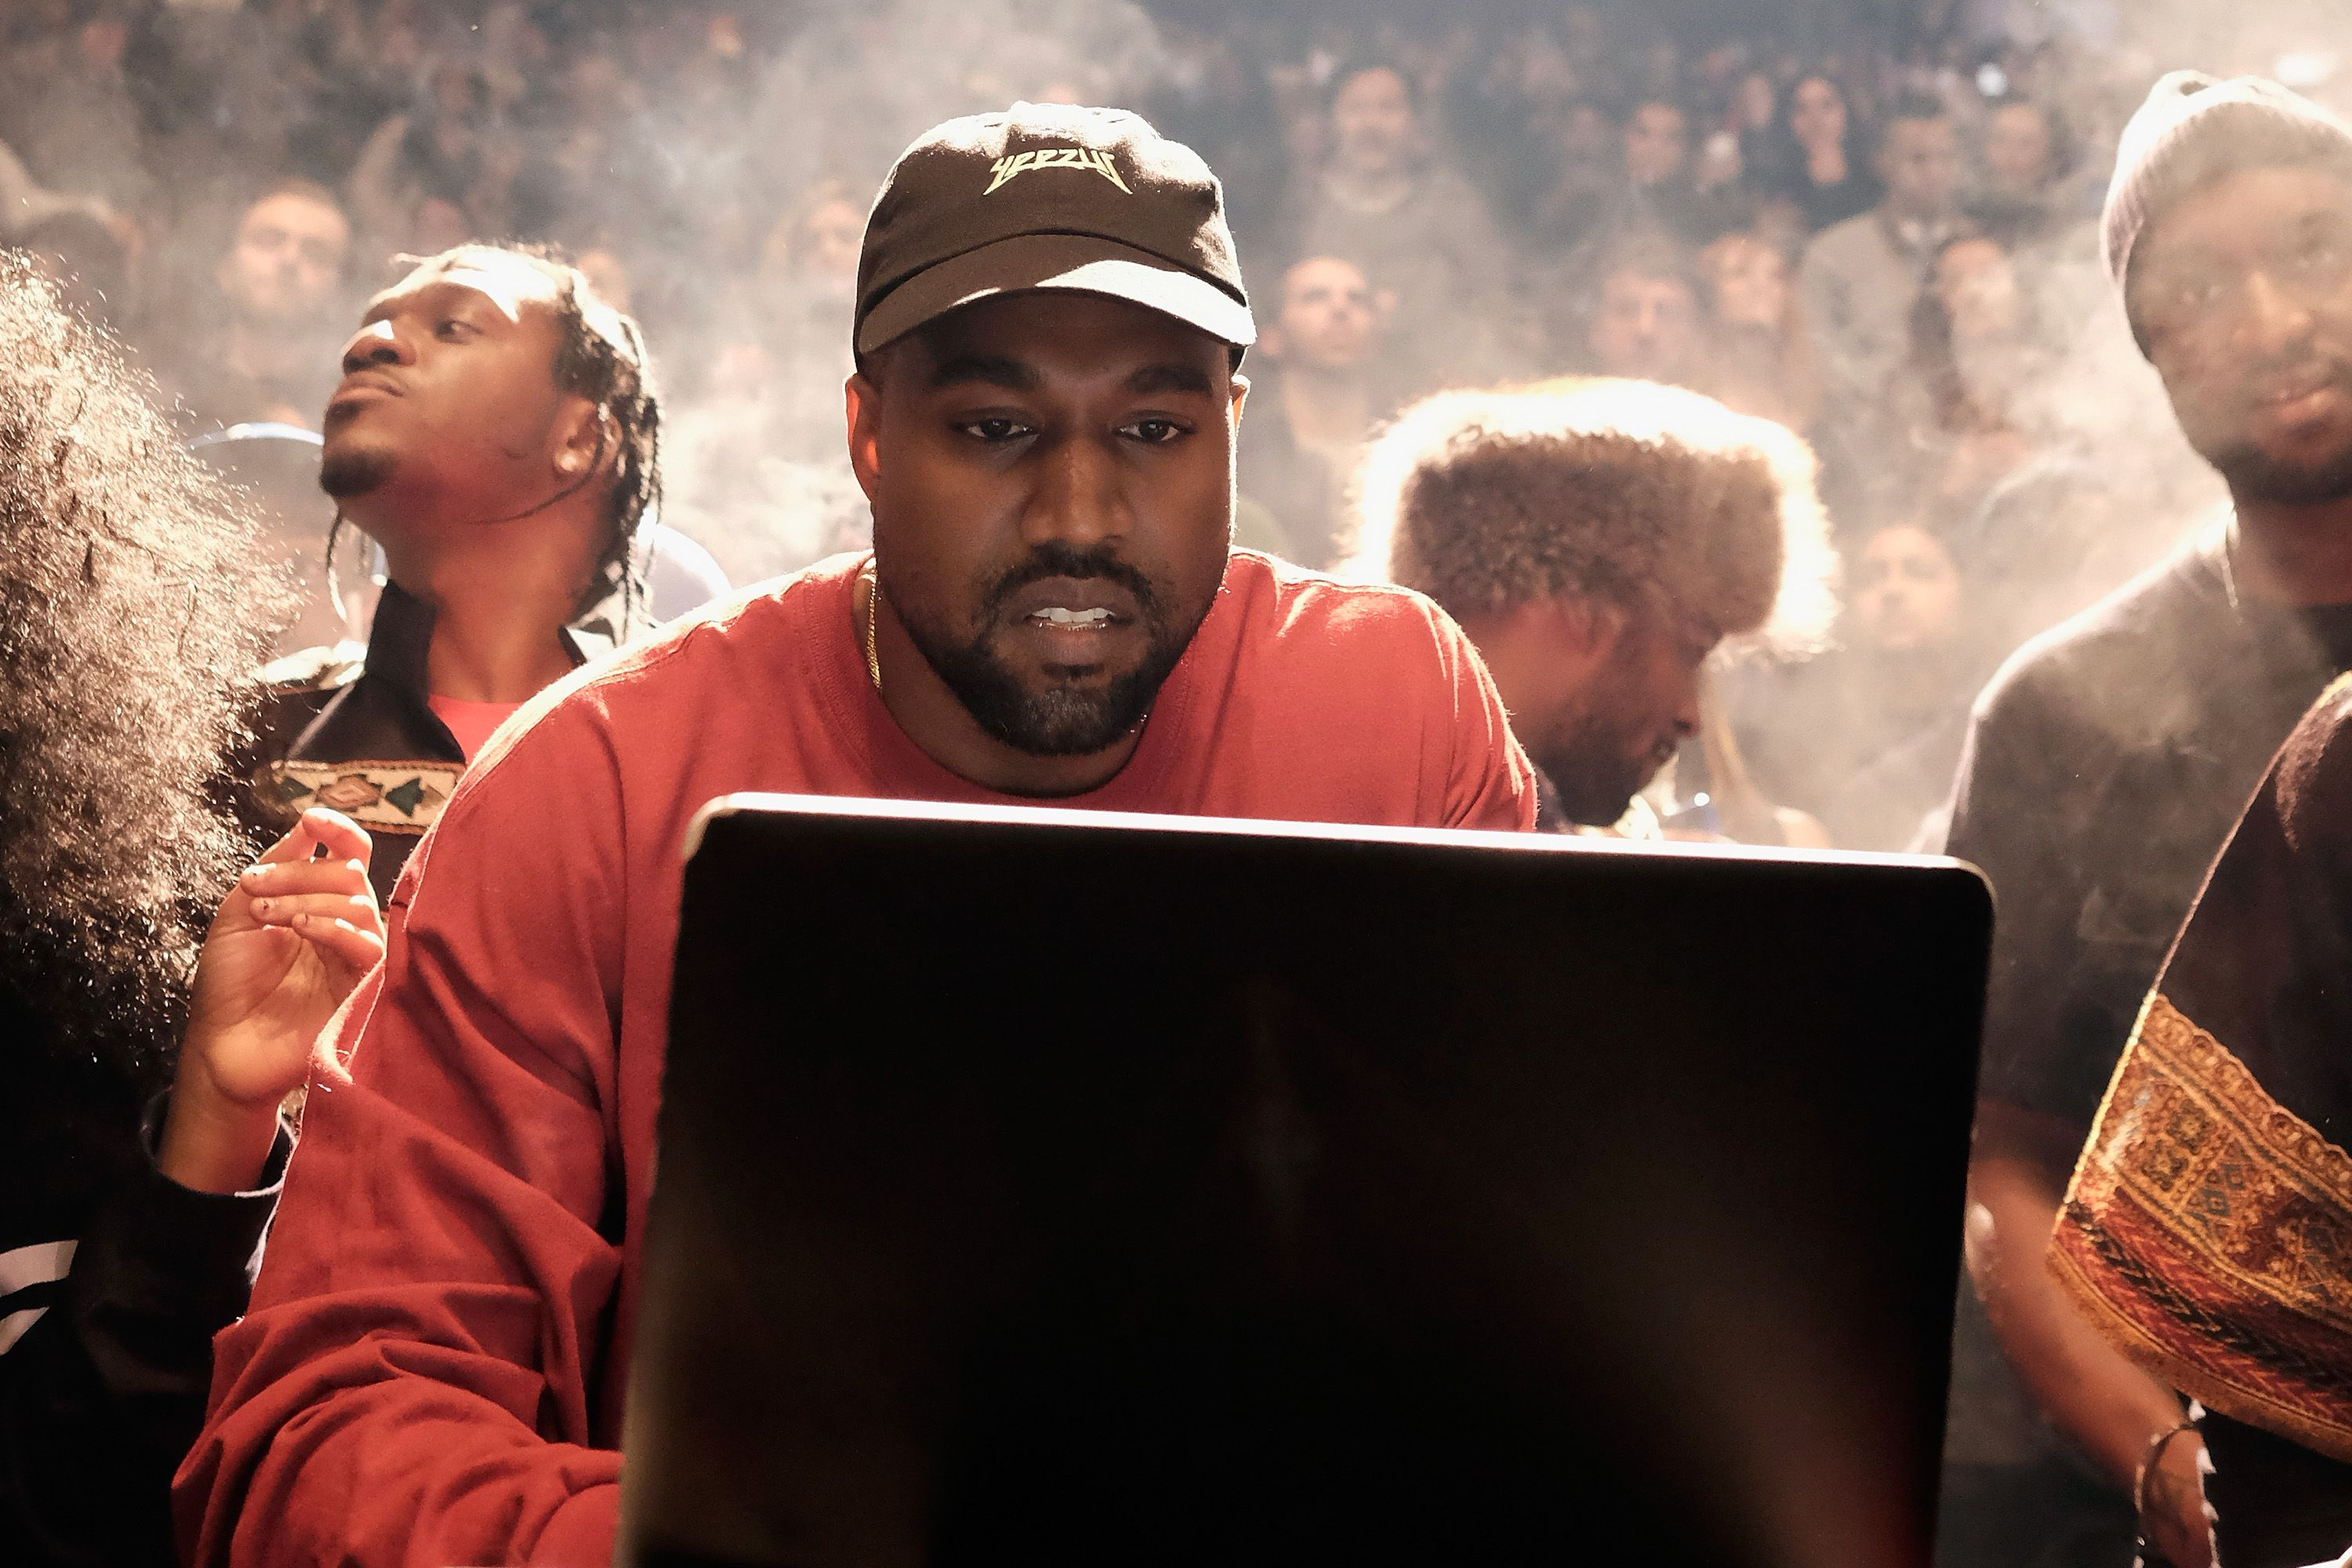 489d77a6fa0d2 Does Kanye West Really Support Donald Trump  - Kanye West Twitter ...